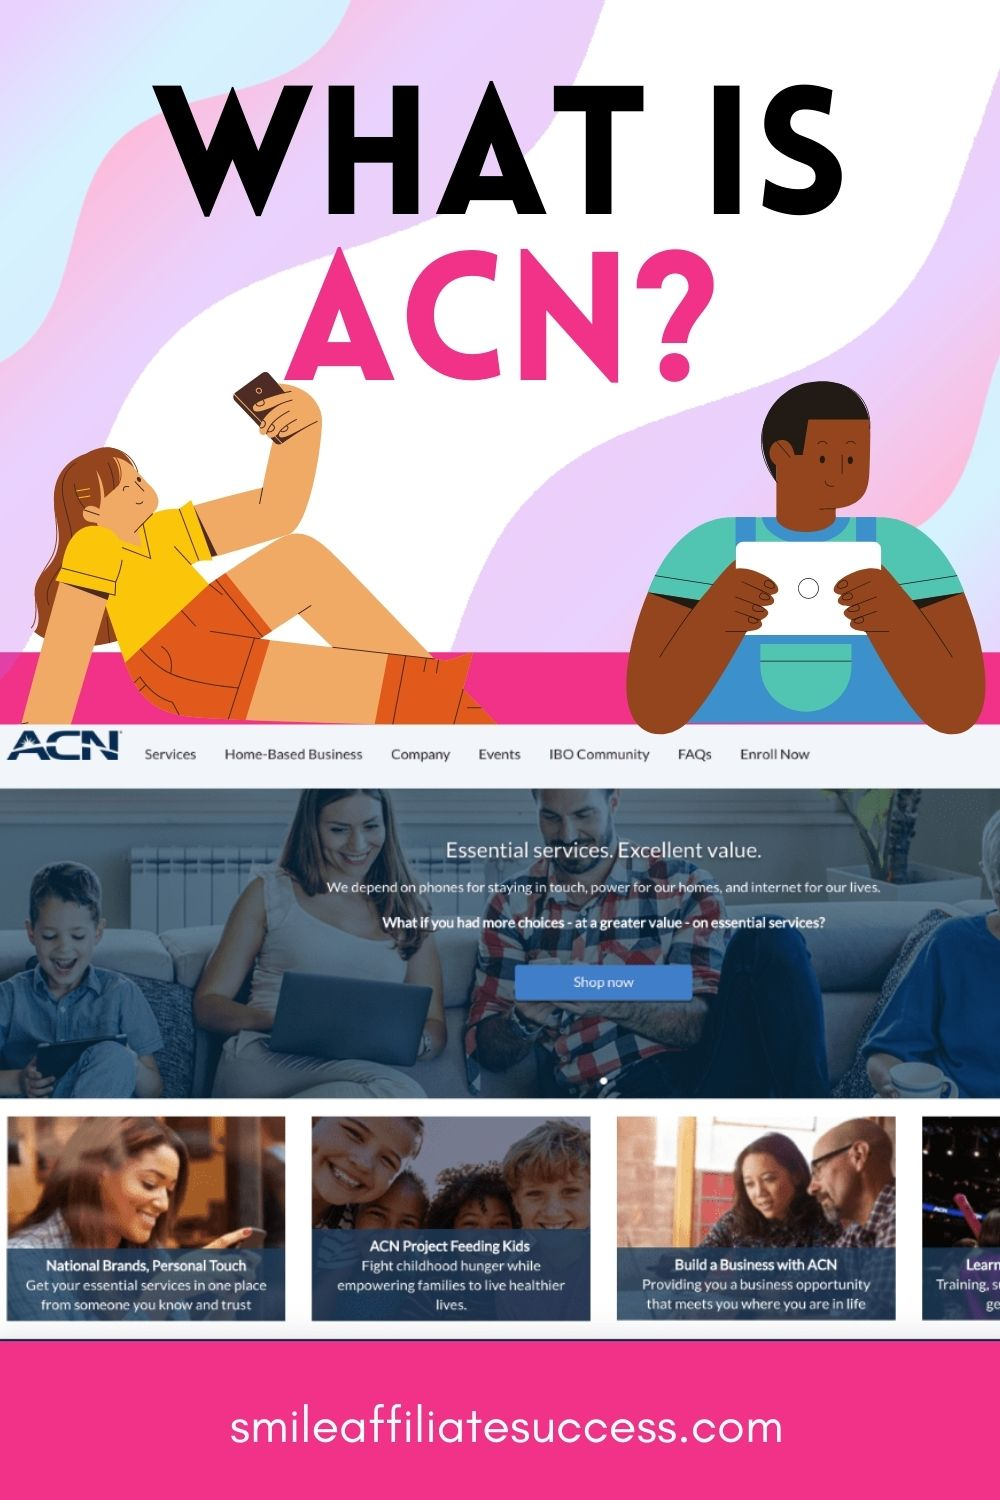 What Is ACN?